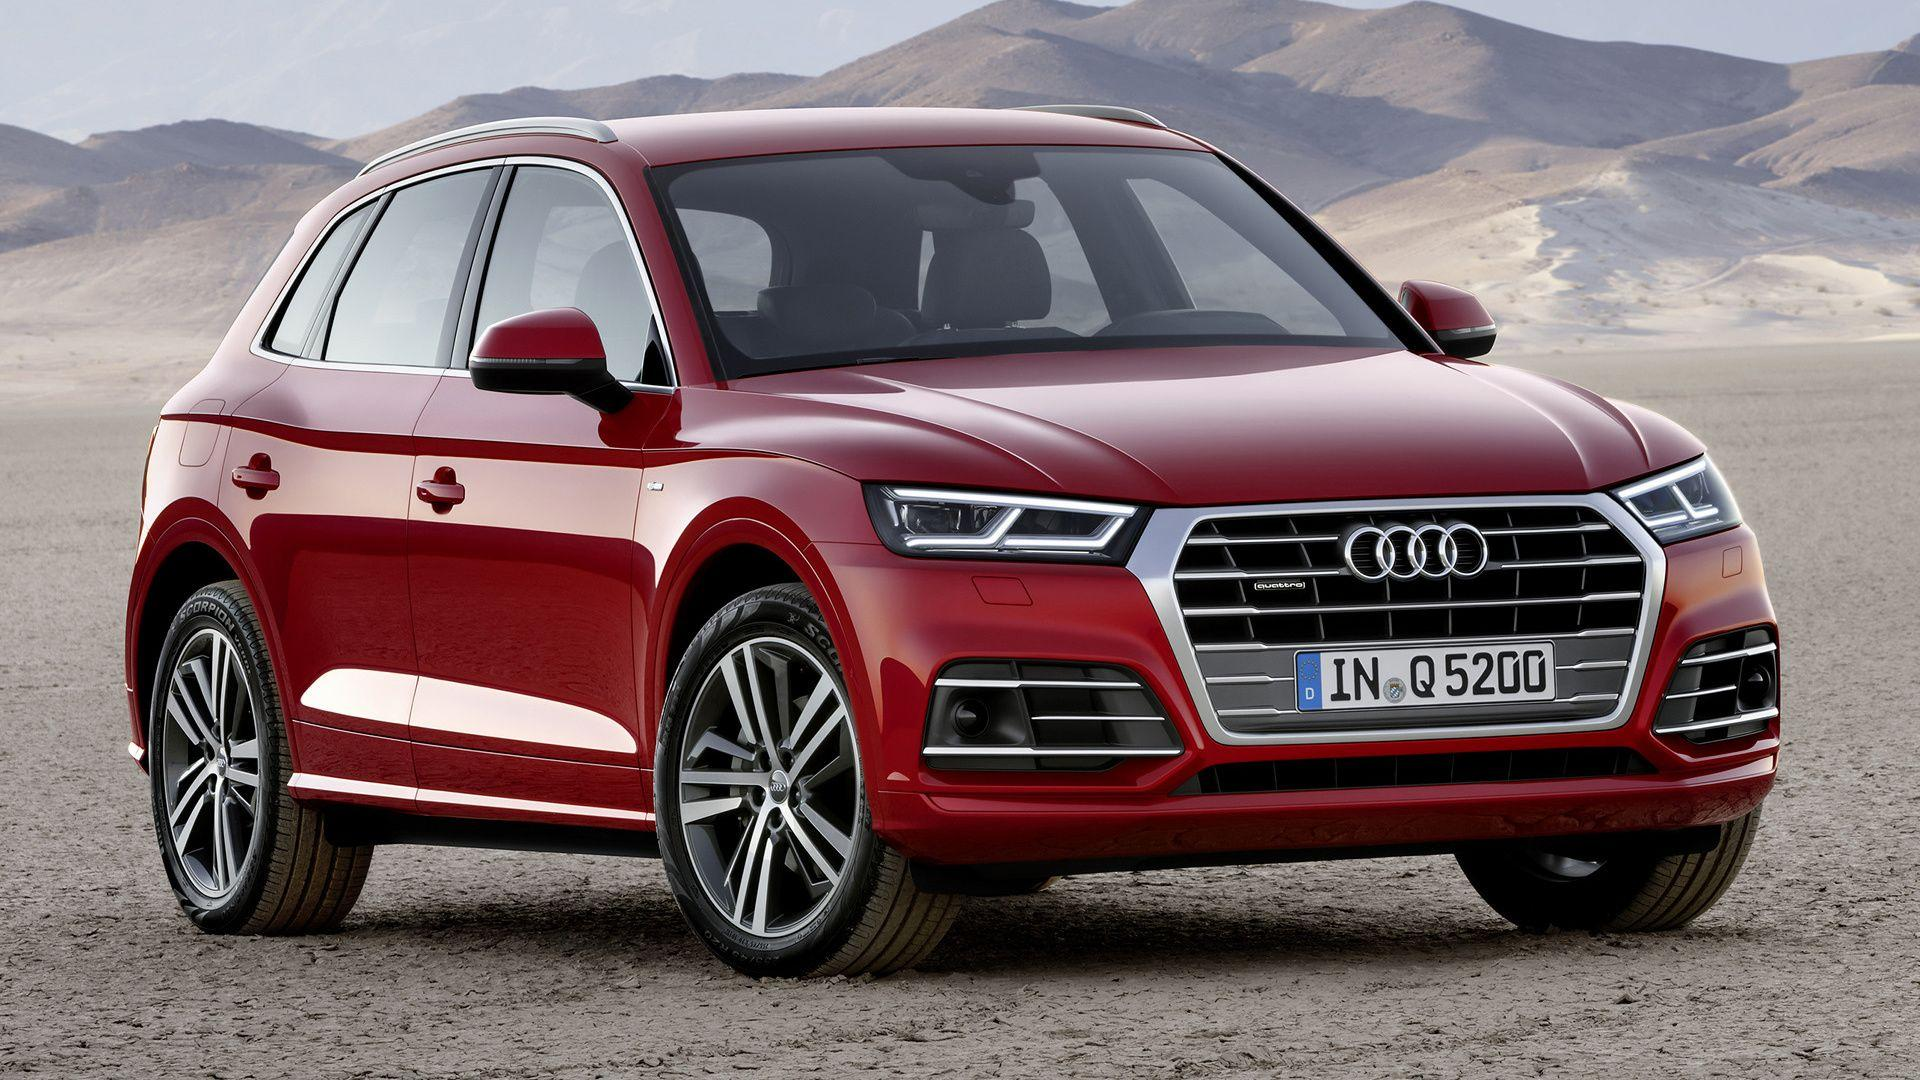 New Audi Q5 - Wallpapers Found